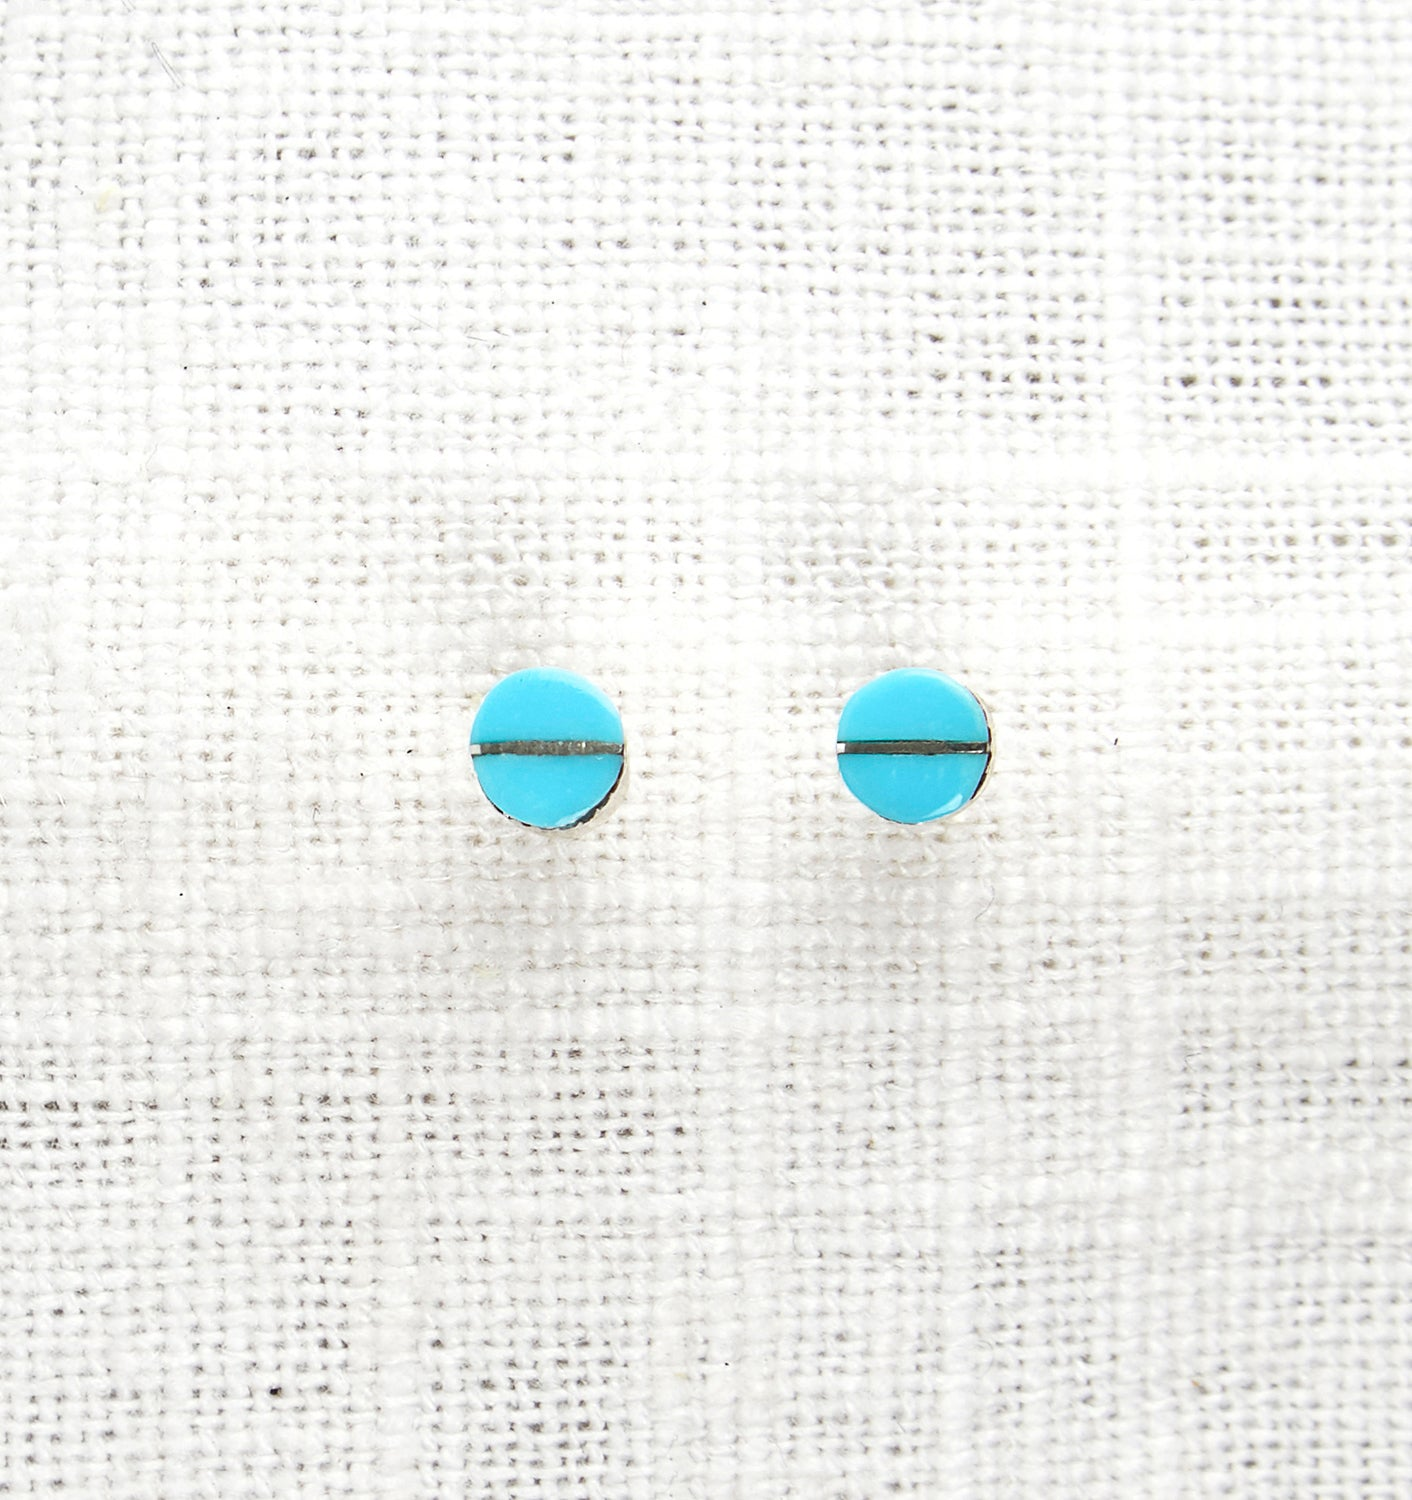 Turquoise and Silver Stud Earrings